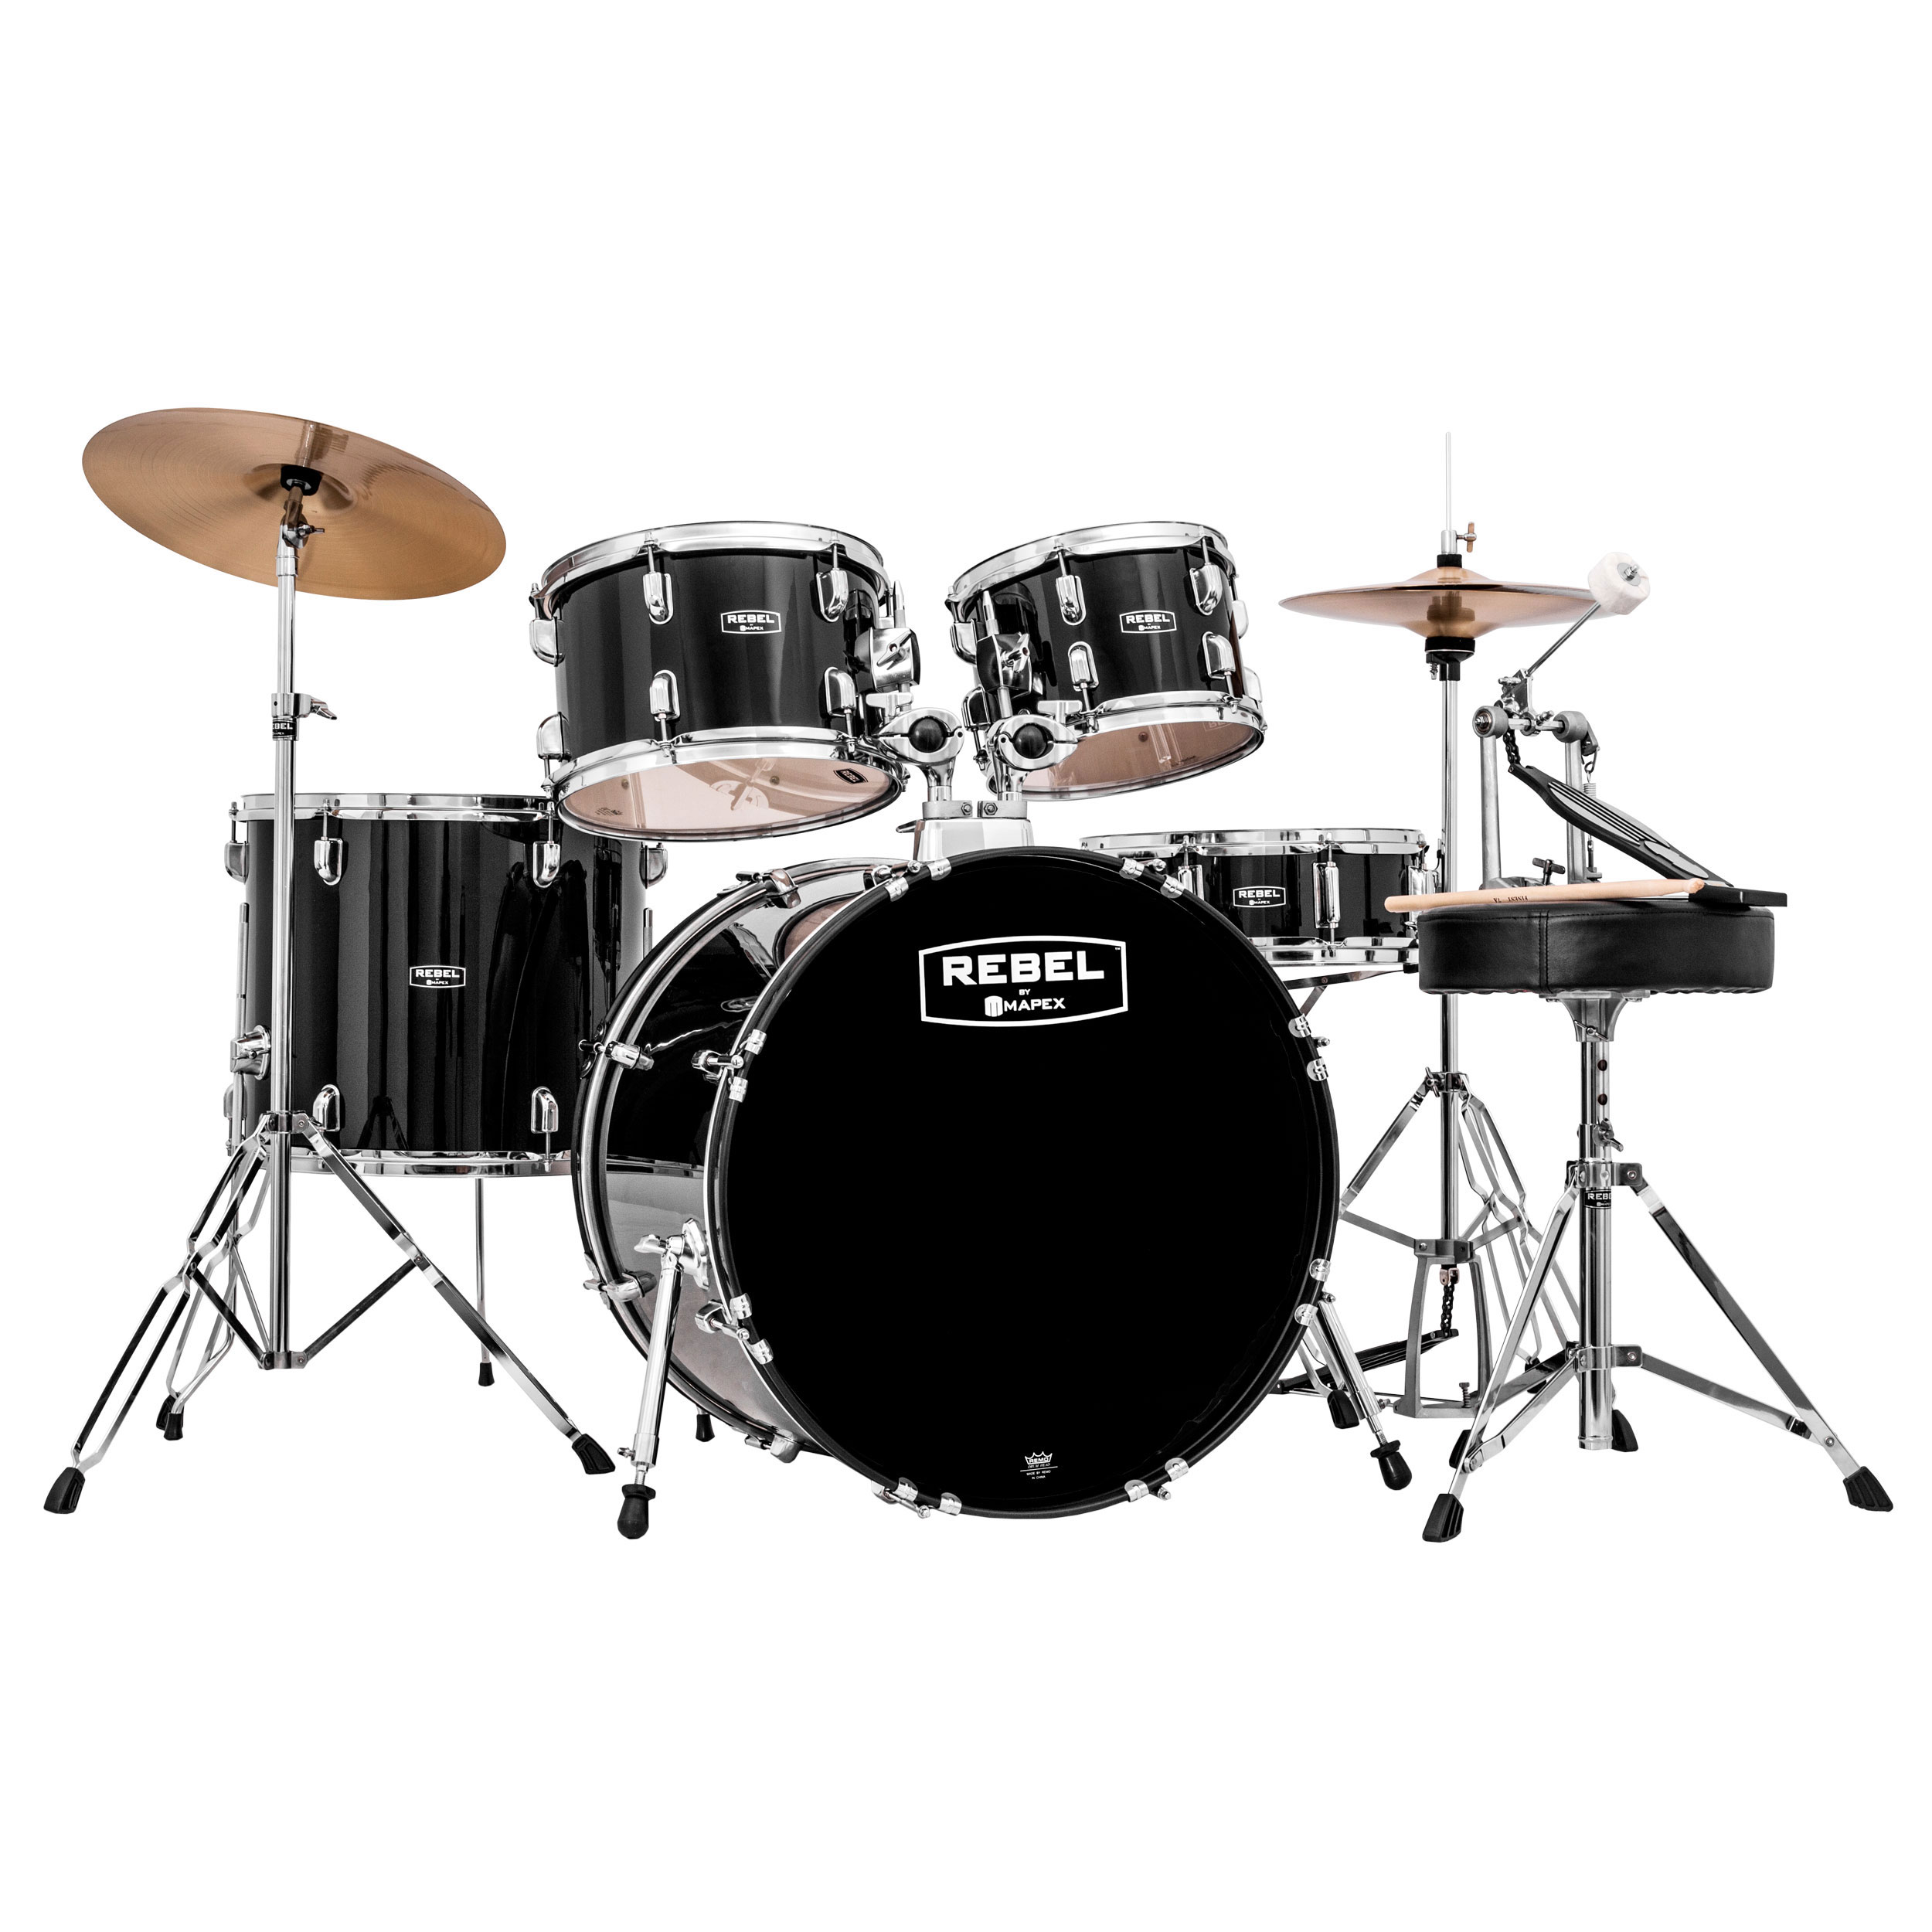 "Mapex Rebel 5-Piece Drum Set (18"" Bass, 10/12/14"" Toms, 14"" Snare) with Hardware and Cymbals"